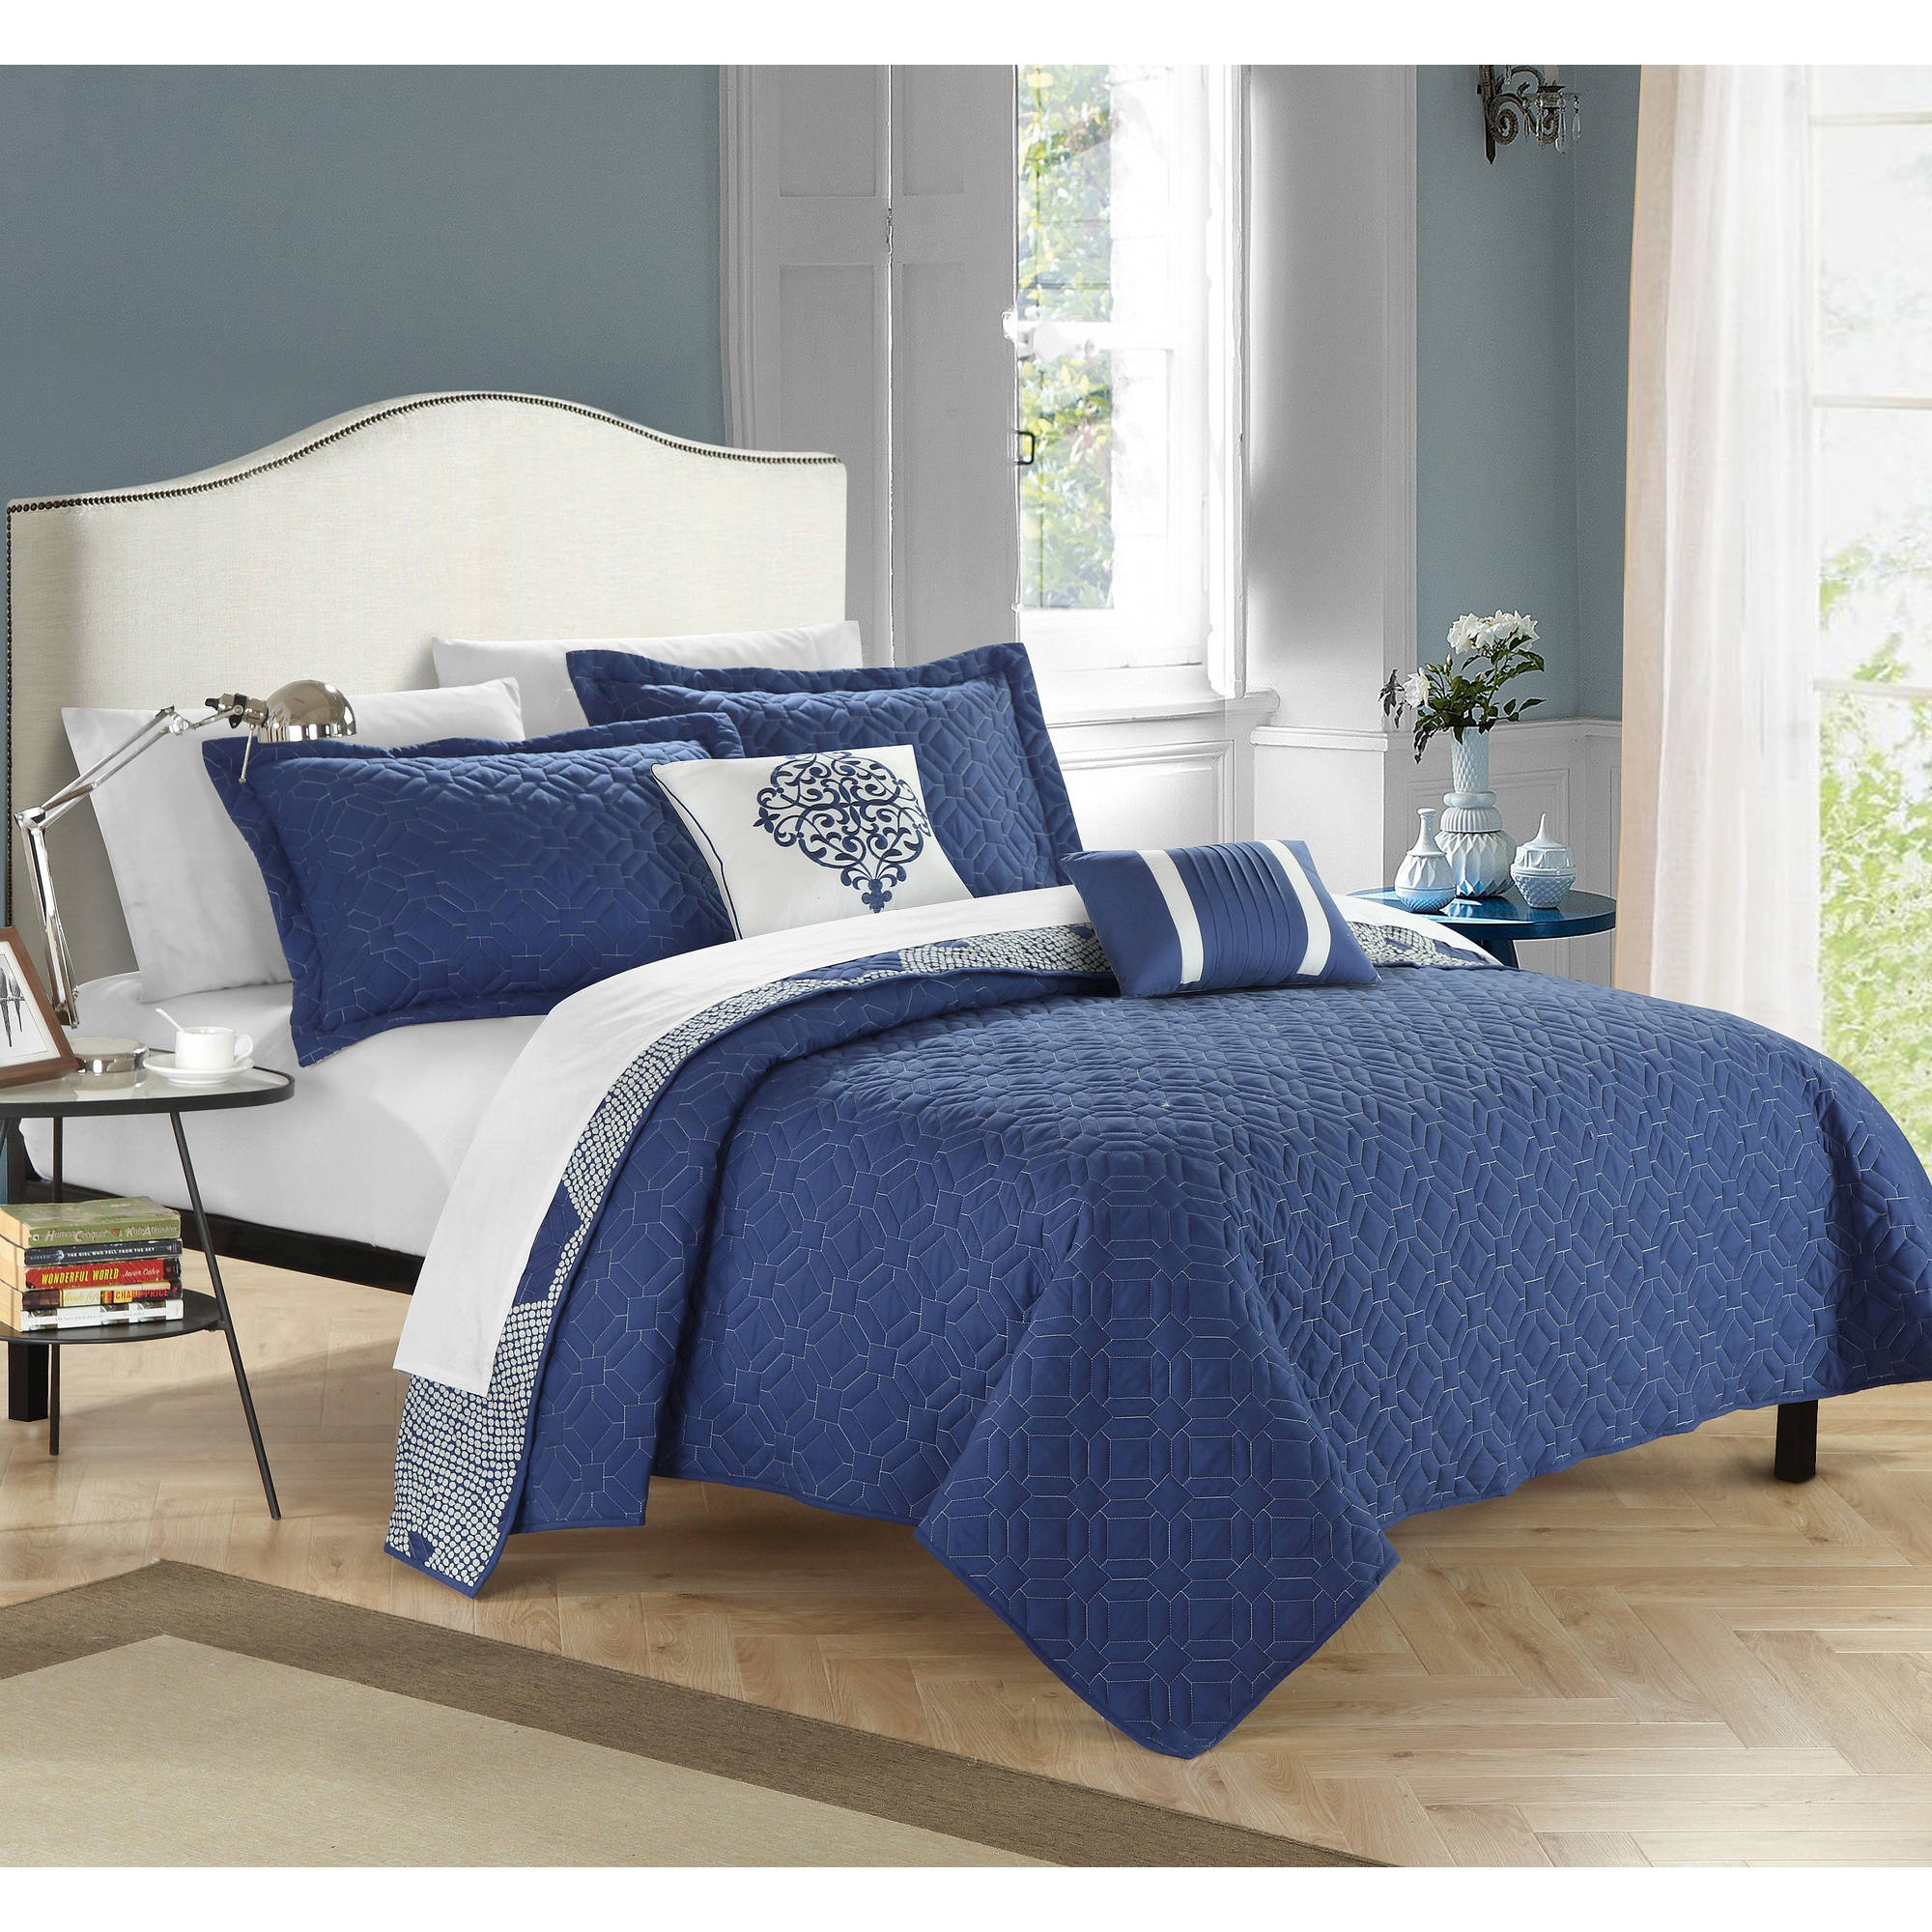 Chic Home Pandora 5 Piece Quilt Set by Chic Home